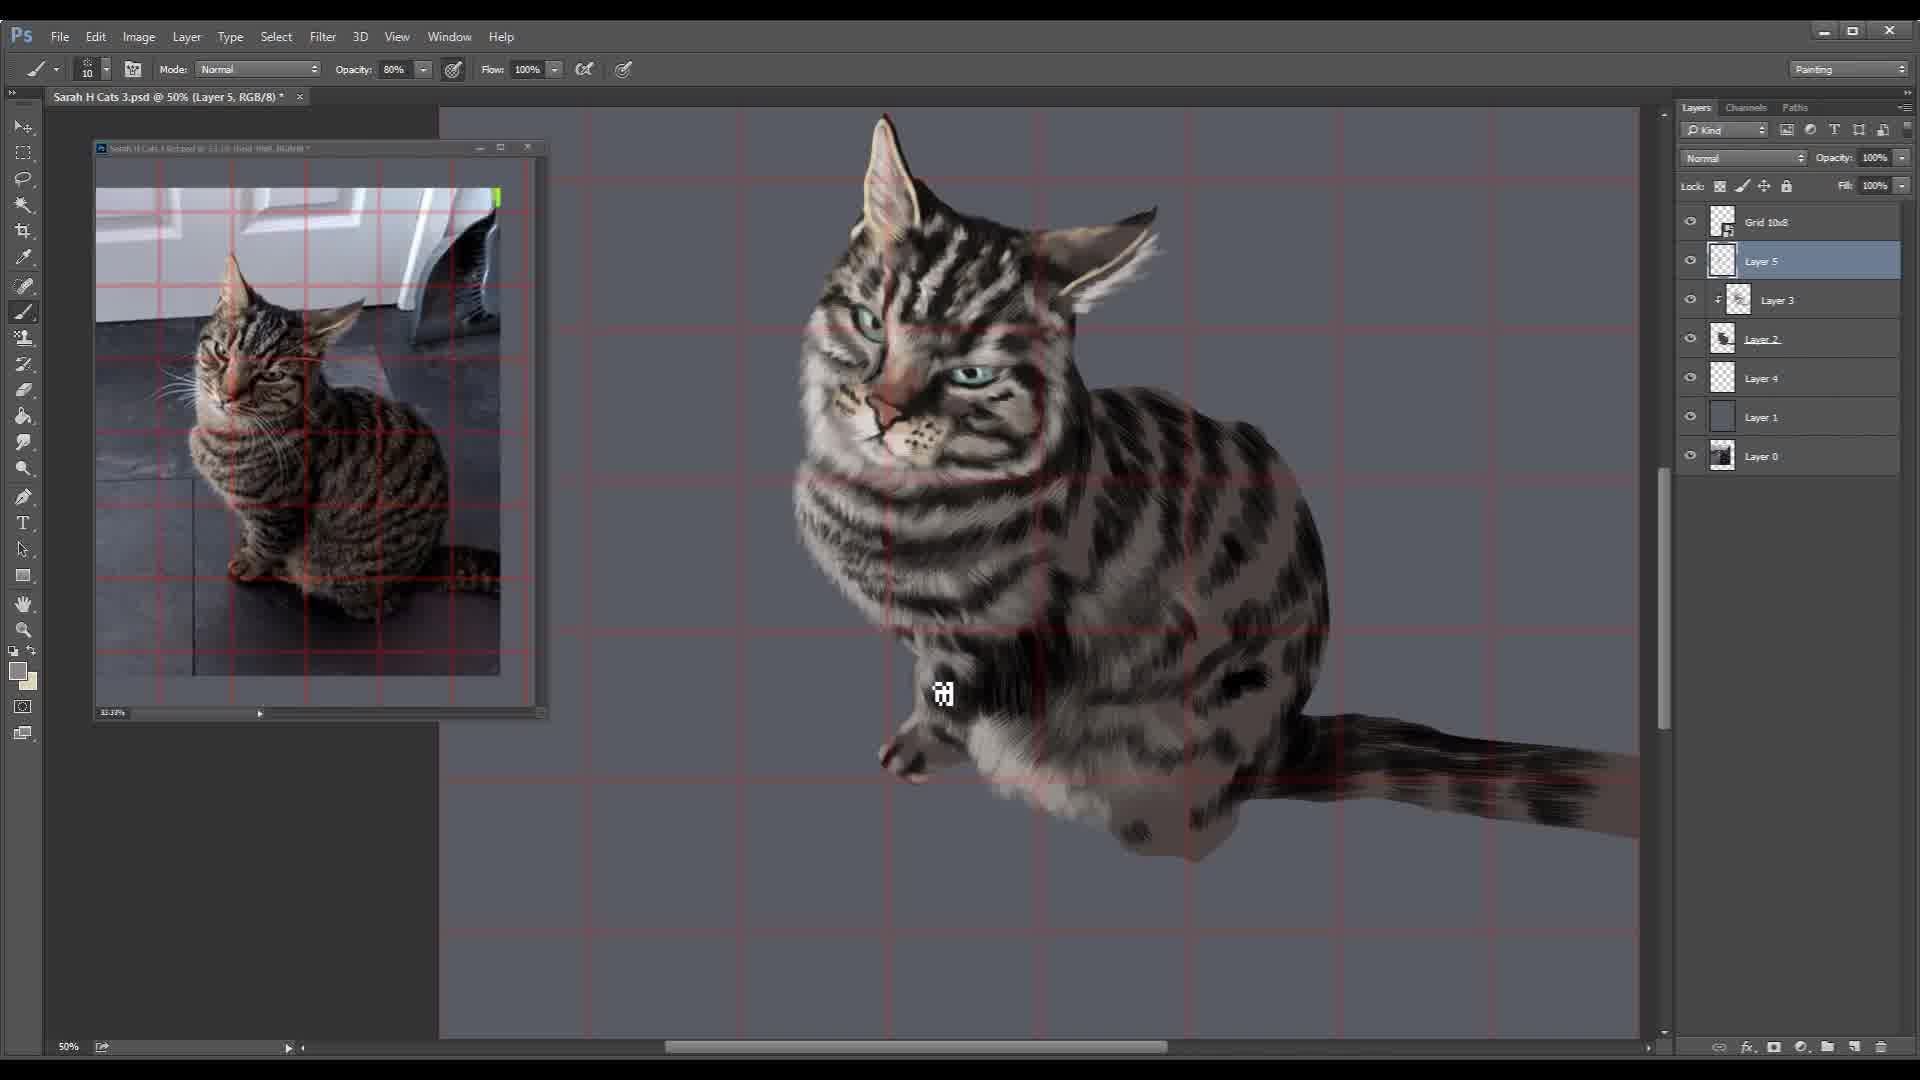 Digitally Painting a Cat